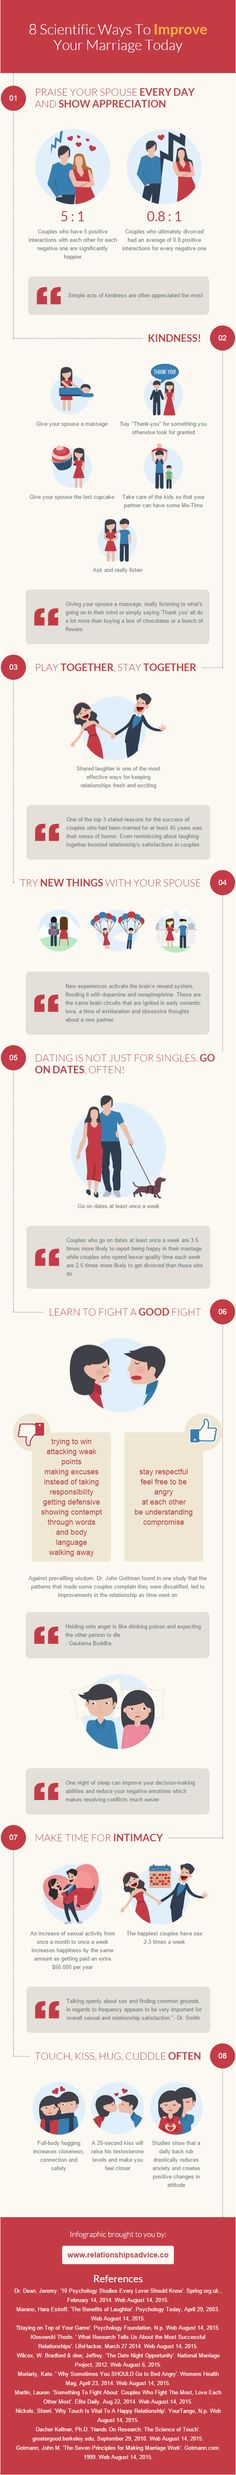 Improve Your Marriage Today with These 8 Scientific Advices - Tipsographic